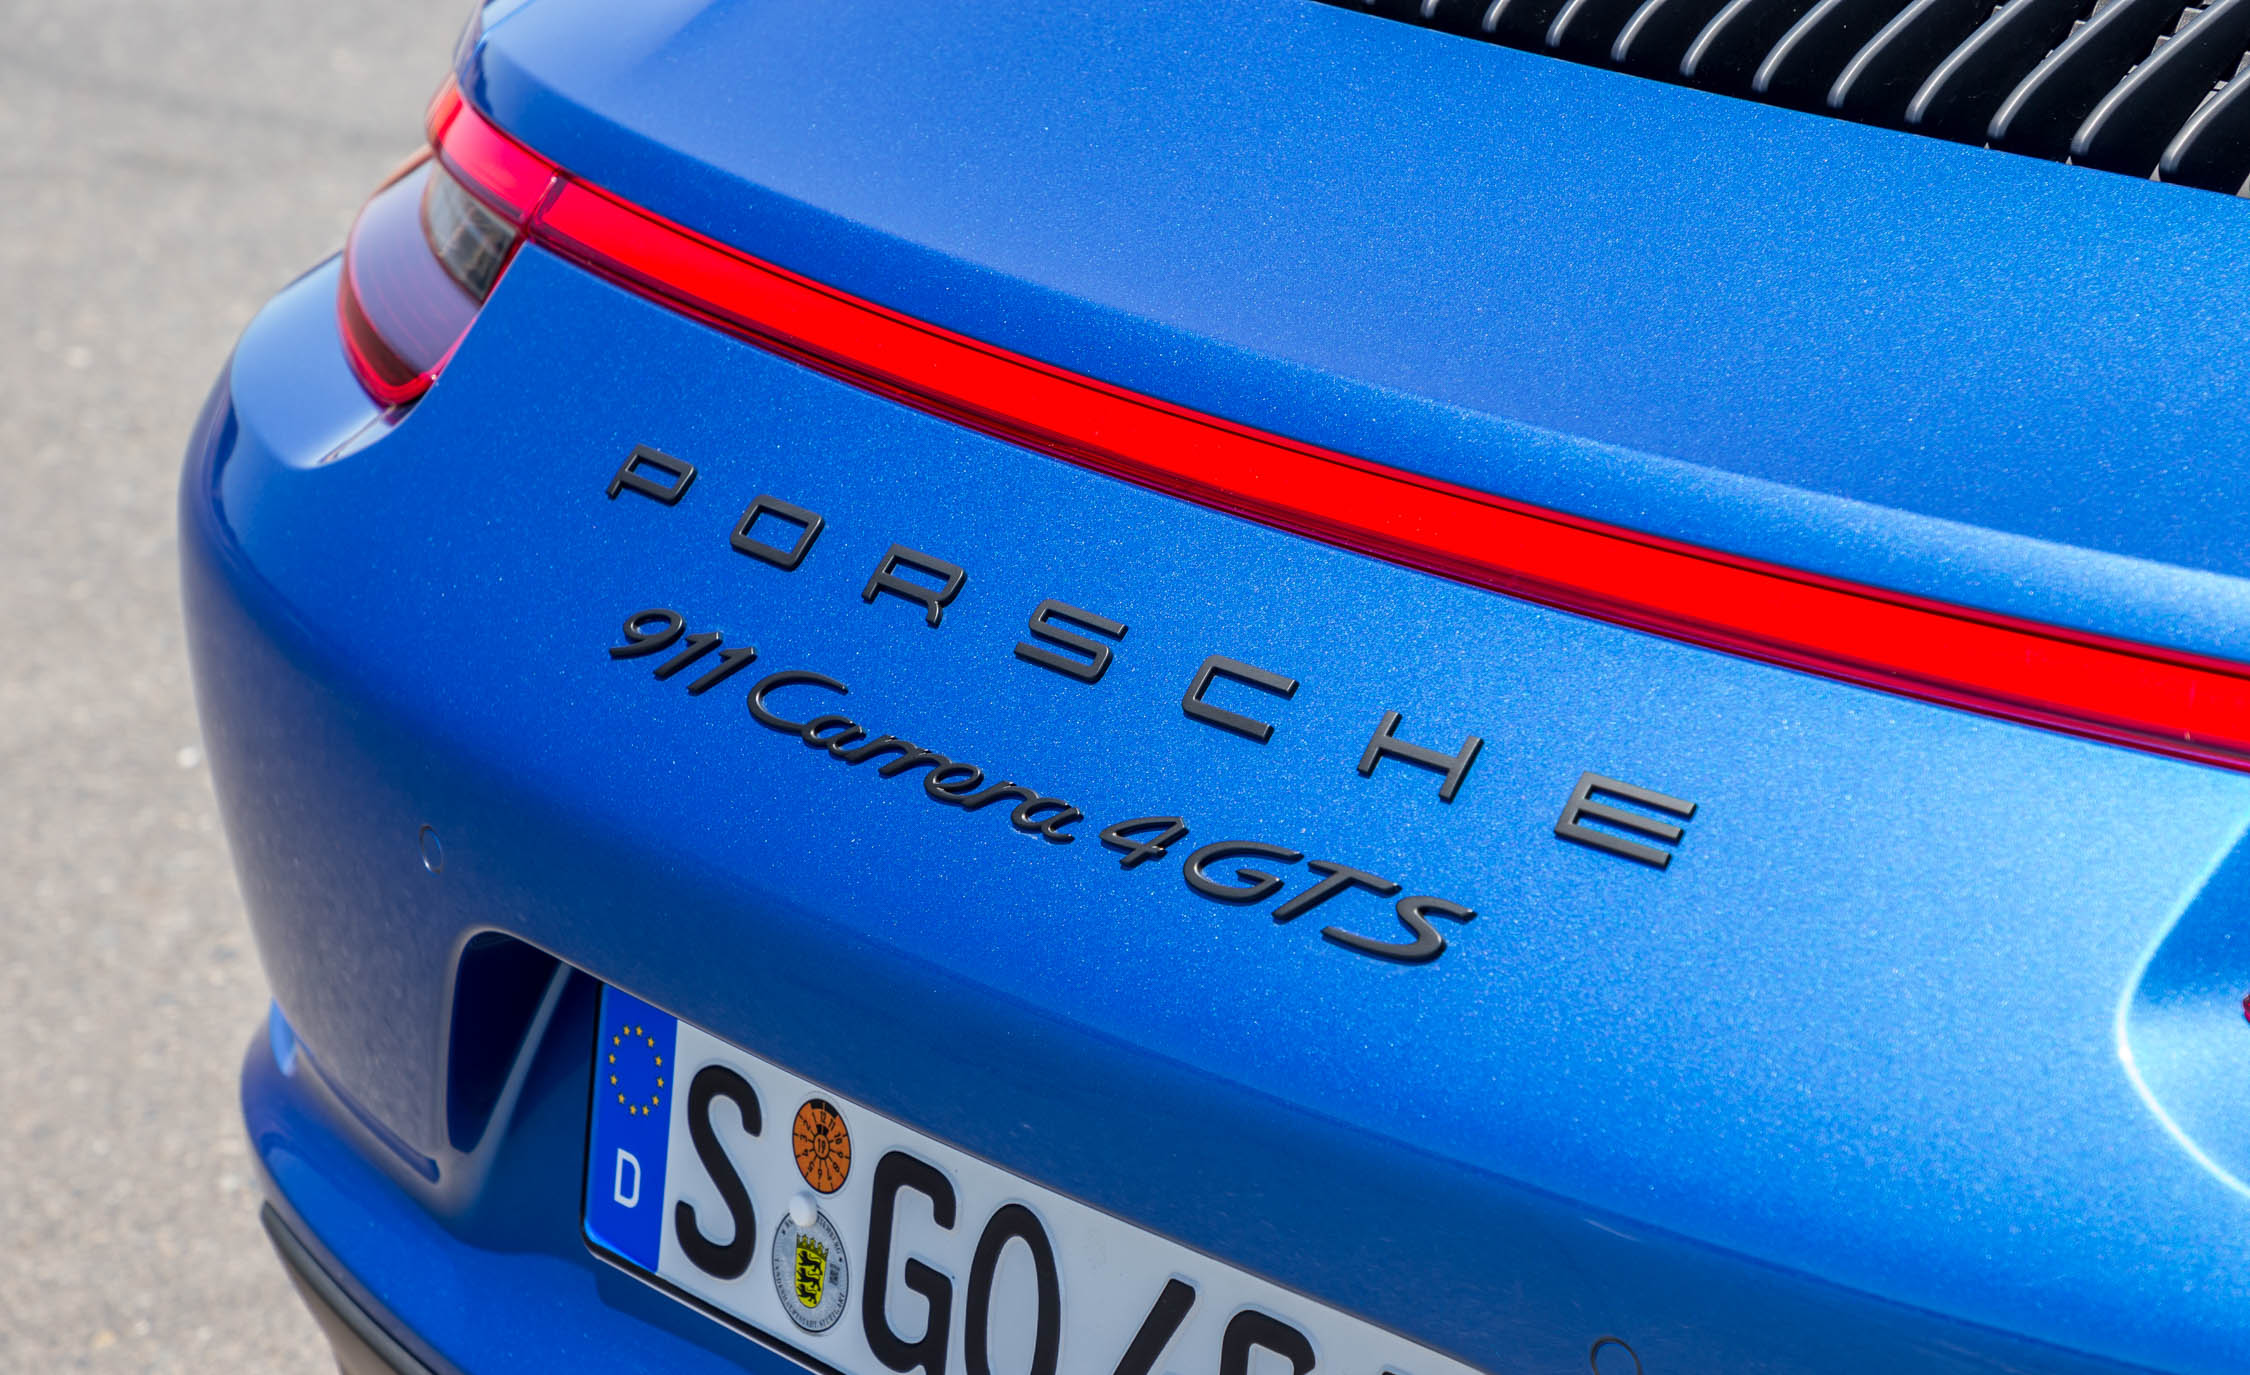 2017 Porsche 911 Carrera 4 GTS Coupe Exterior View Rear Emblem (Photo 22 of 97)